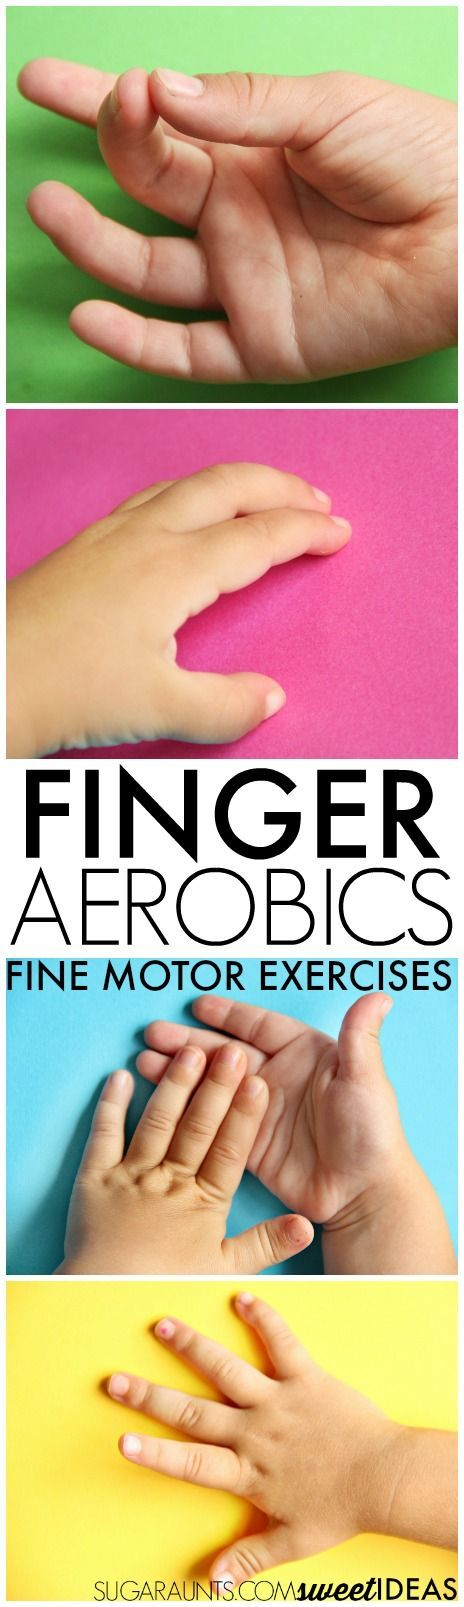 Use finger aerobics in the classroom, home or therapy clinic to work on fine motor skills needed for functional tasks. Hand aerobics are a great fine motor exercise workout before handwriting tasks for the whole class! Perfect for the school based OT.